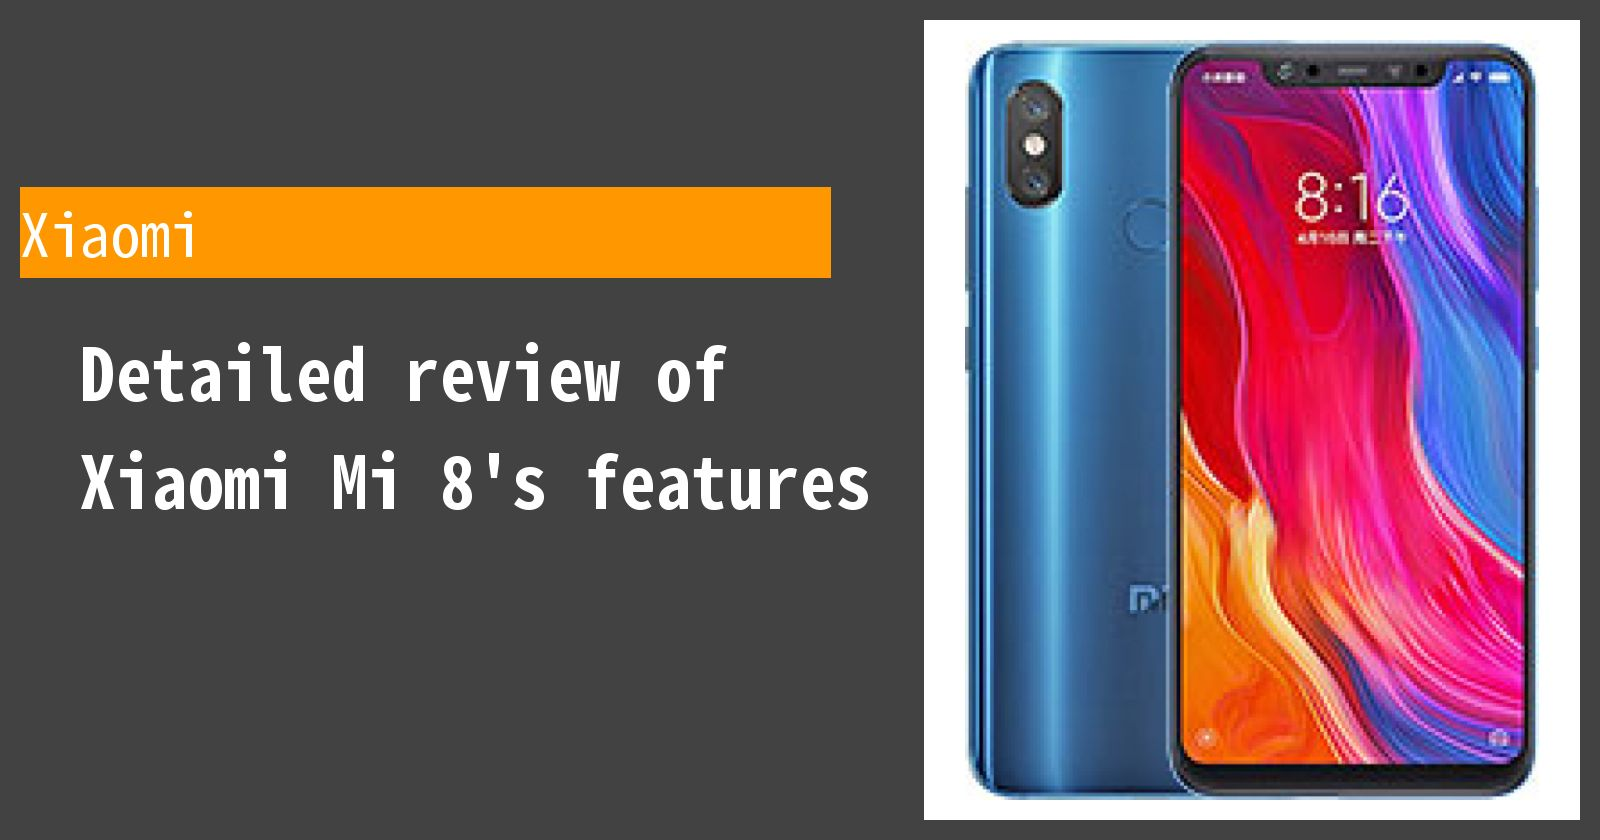 Detailed review of Xiaomi Mi 8's features